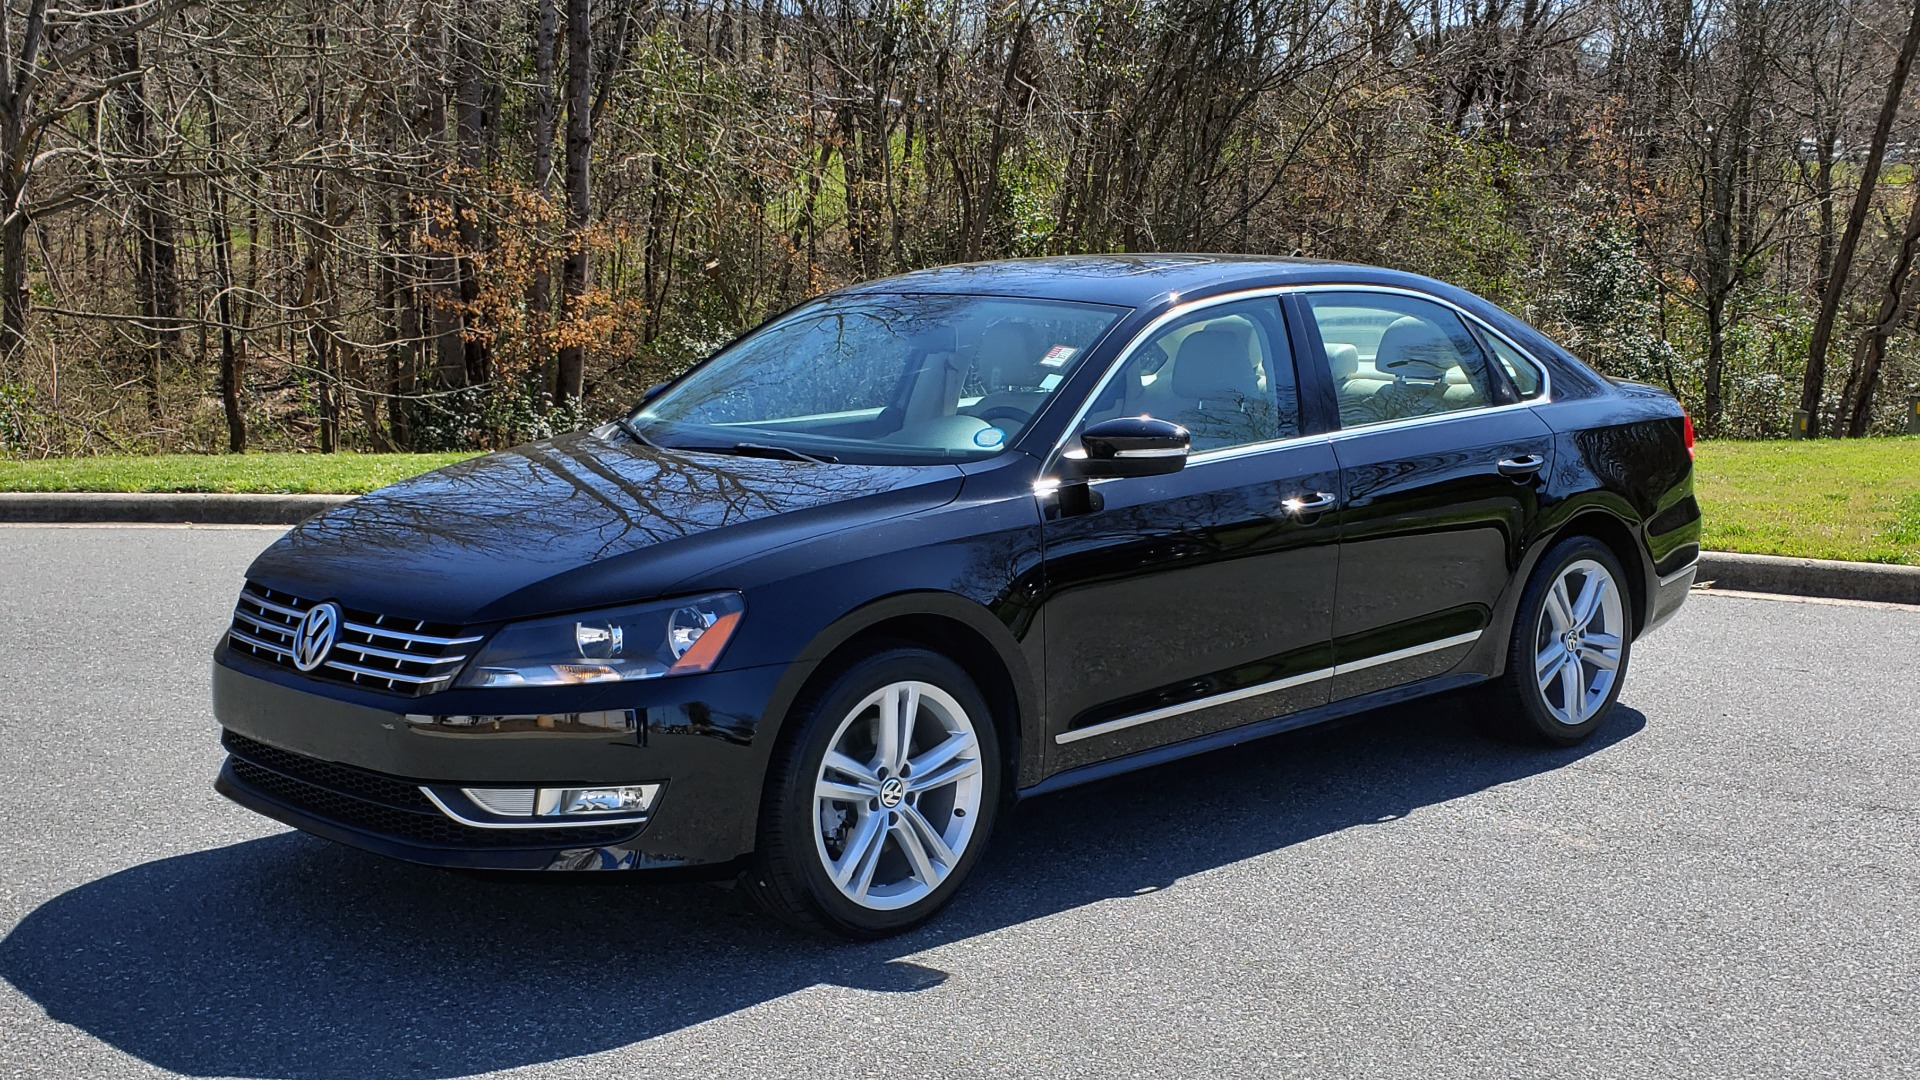 Used 2014 Volkswagen PASSAT SEL PREMIUM / NAV / SUNROOF / REARVIEW / 6-SPD AUTO for sale Sold at Formula Imports in Charlotte NC 28227 1